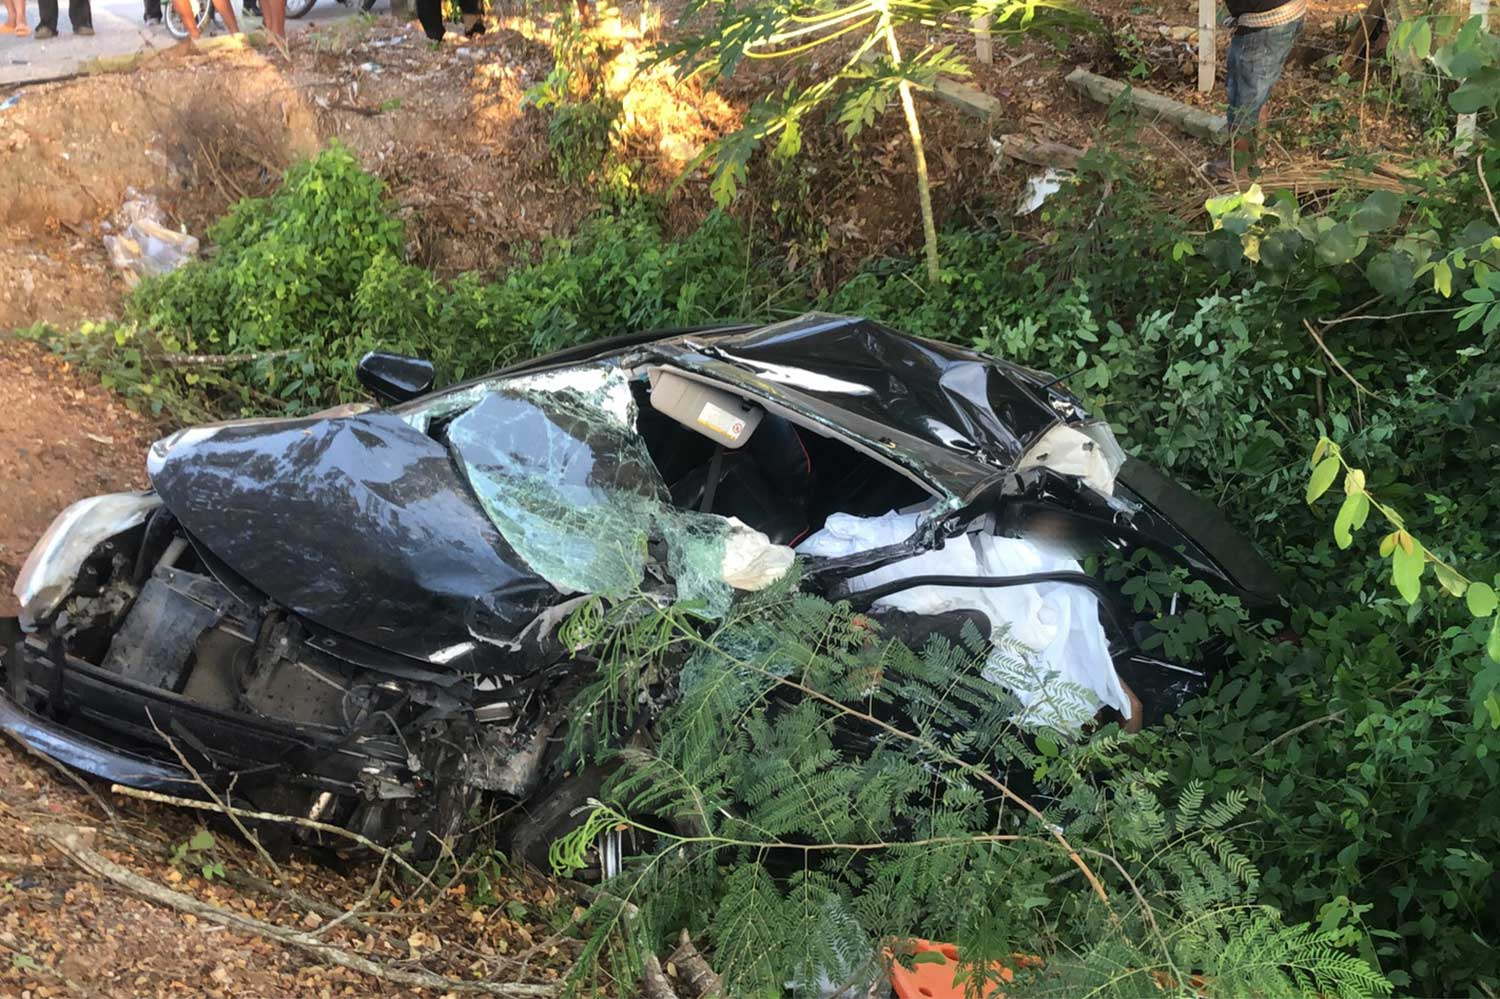 The wreckage of the Toyota Yaris sedan after it and a pickup collided head-on in Nakhon Si Thammarat province on Thursday evening. The three people in the car were killed. One was pregnant. (Photo: Nujaree Raekrun)